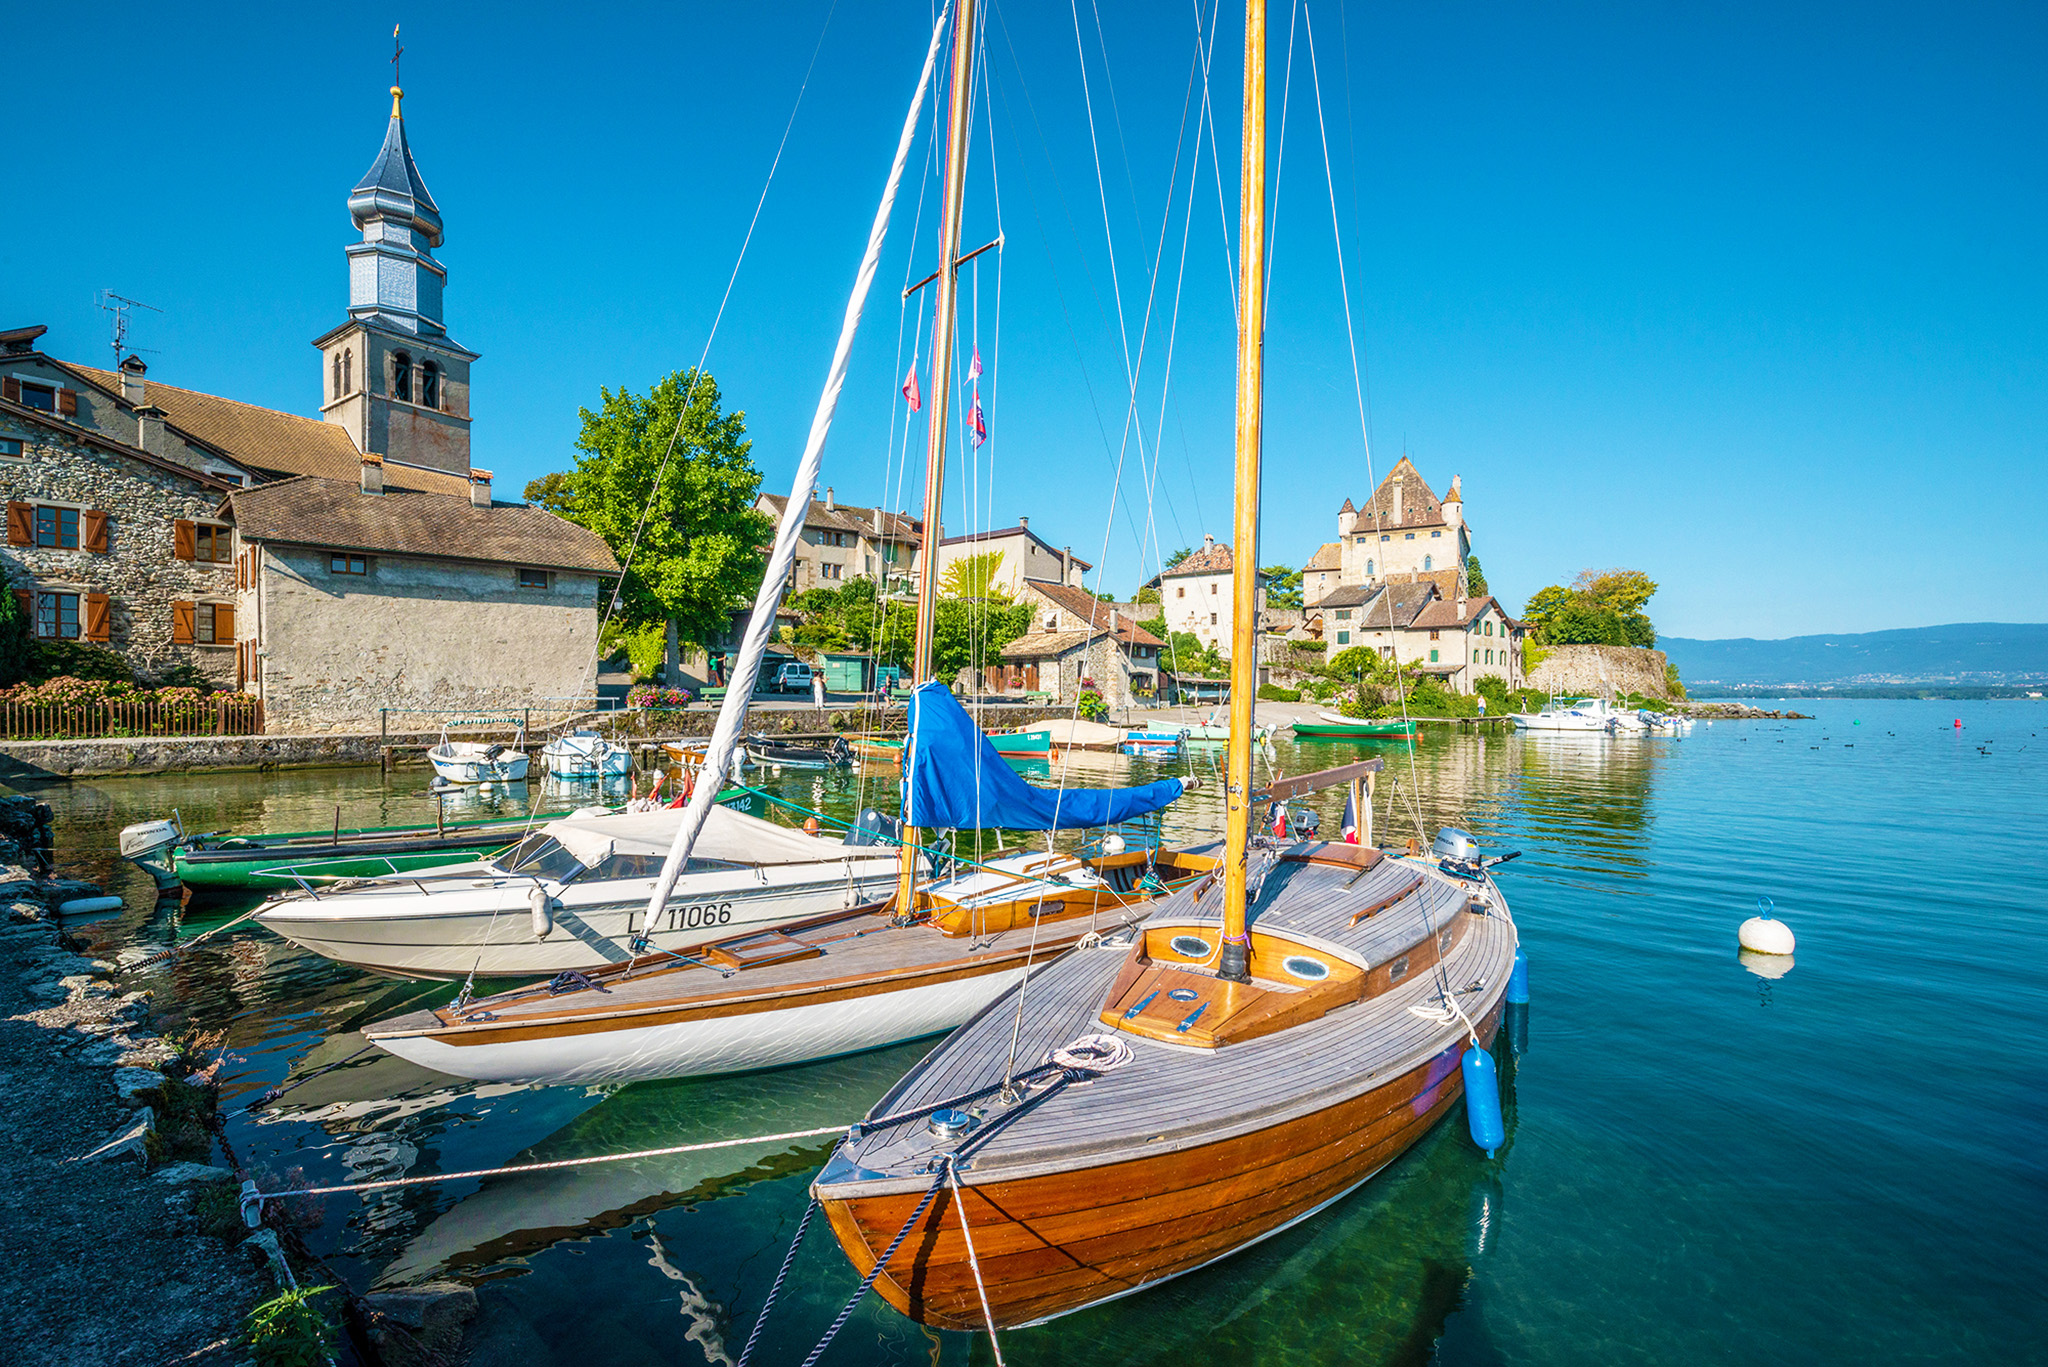 kt_2020_380_Keytours_excursions_Swisstours_yvoire3_2048_10